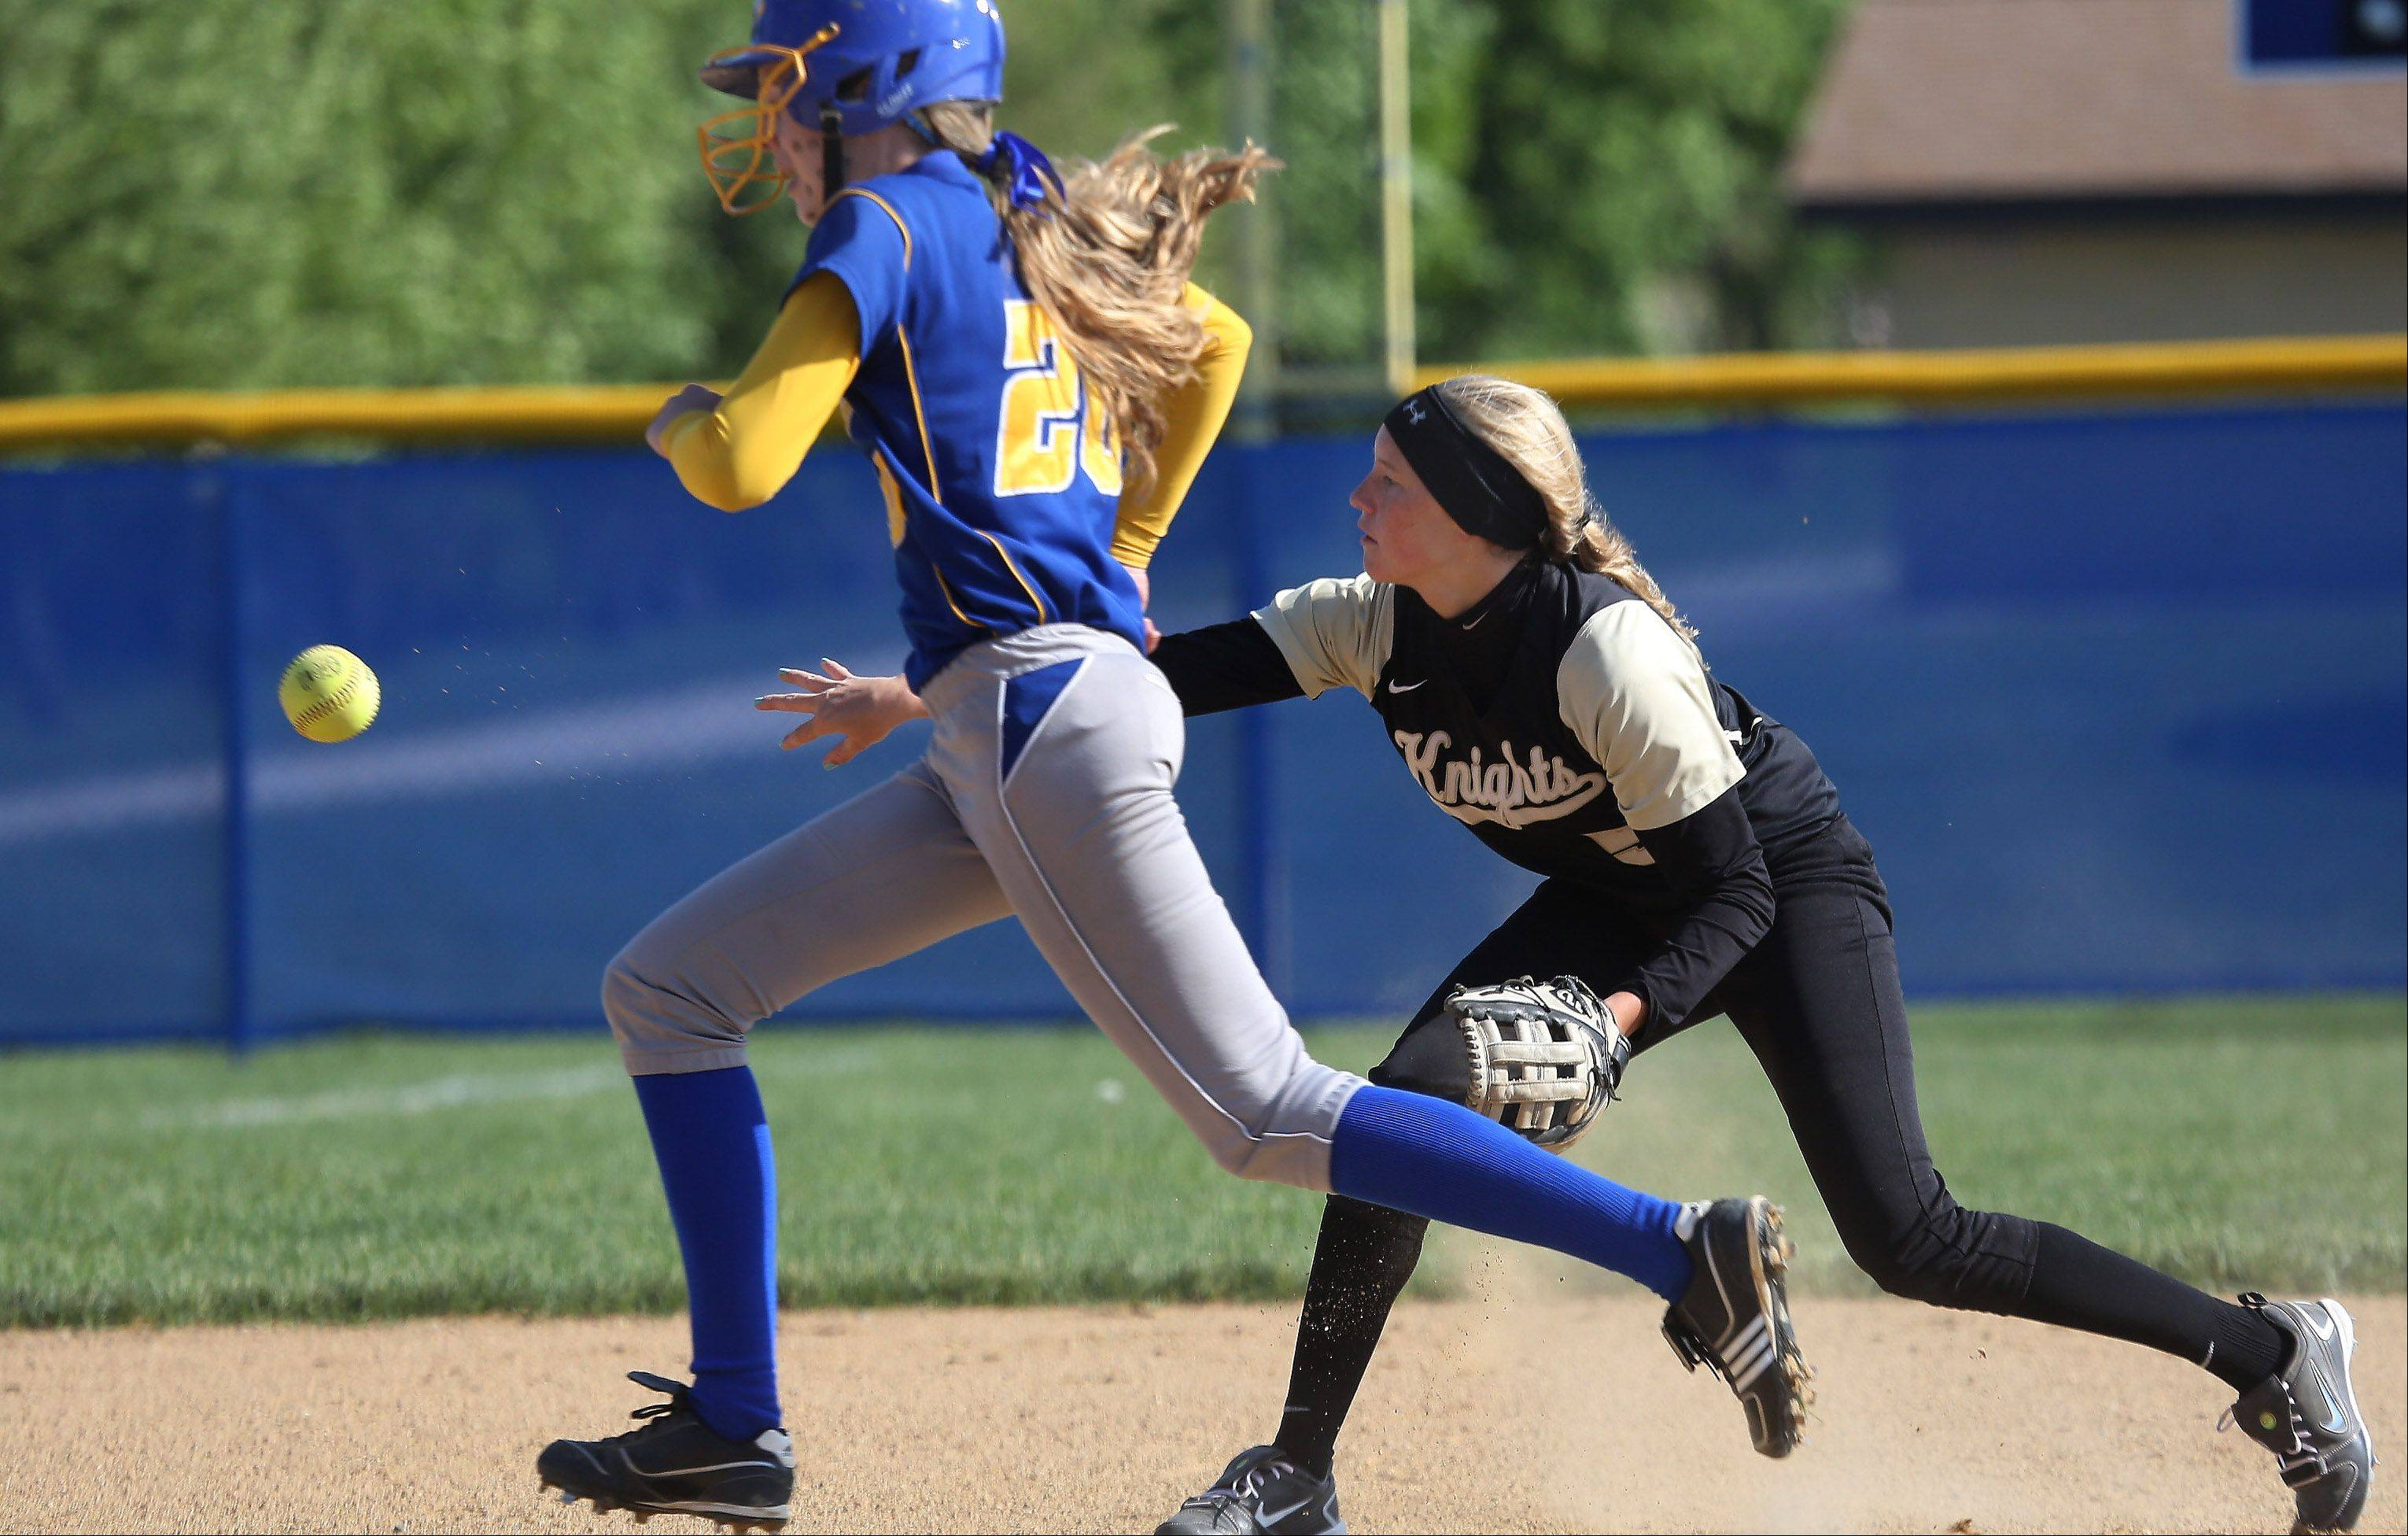 Grayslake North shortstop Jordyn Bowen throws to third base, forcing an out on Warren runner Shannon McKeon during Class 4A regional semifinal play Thursday at Warren.